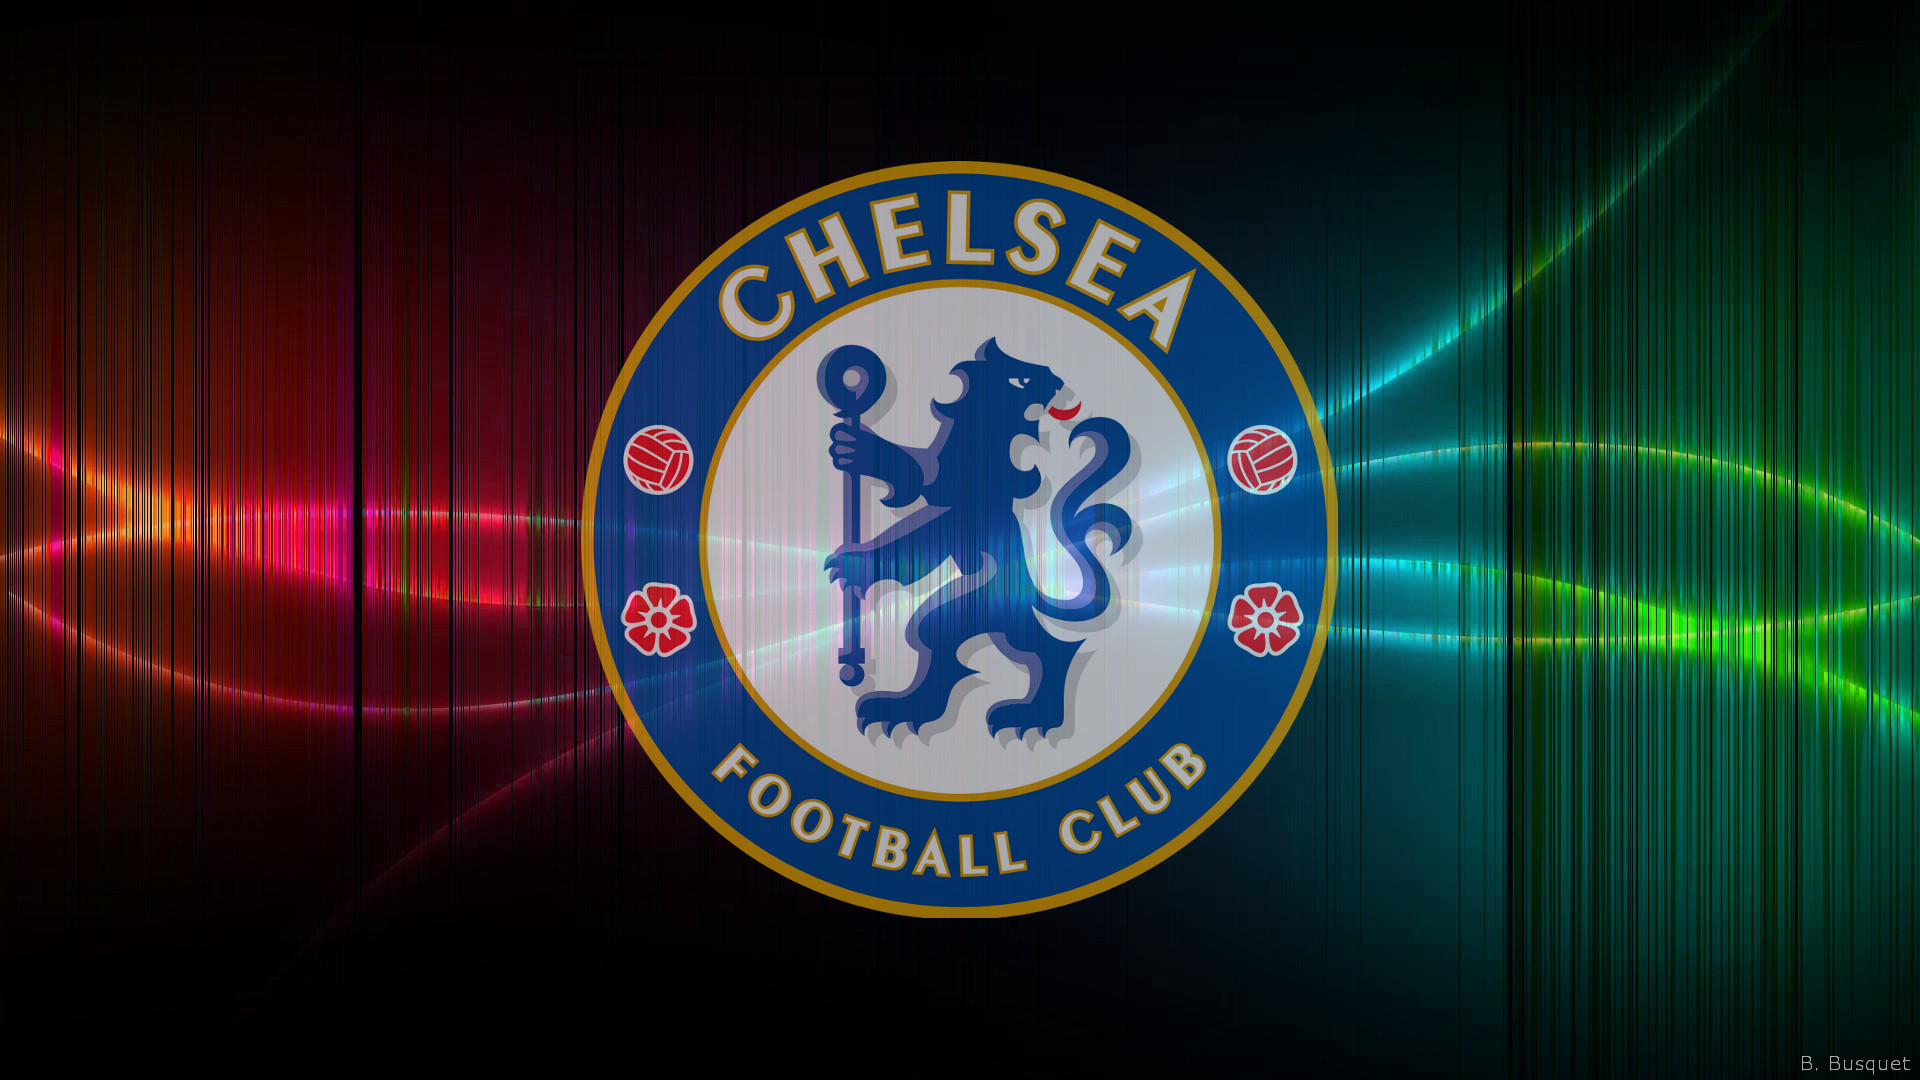 47 Best Chelsea Fc Images On Pinterest: Chelsea Football Club Wallpapers ·① WallpaperTag